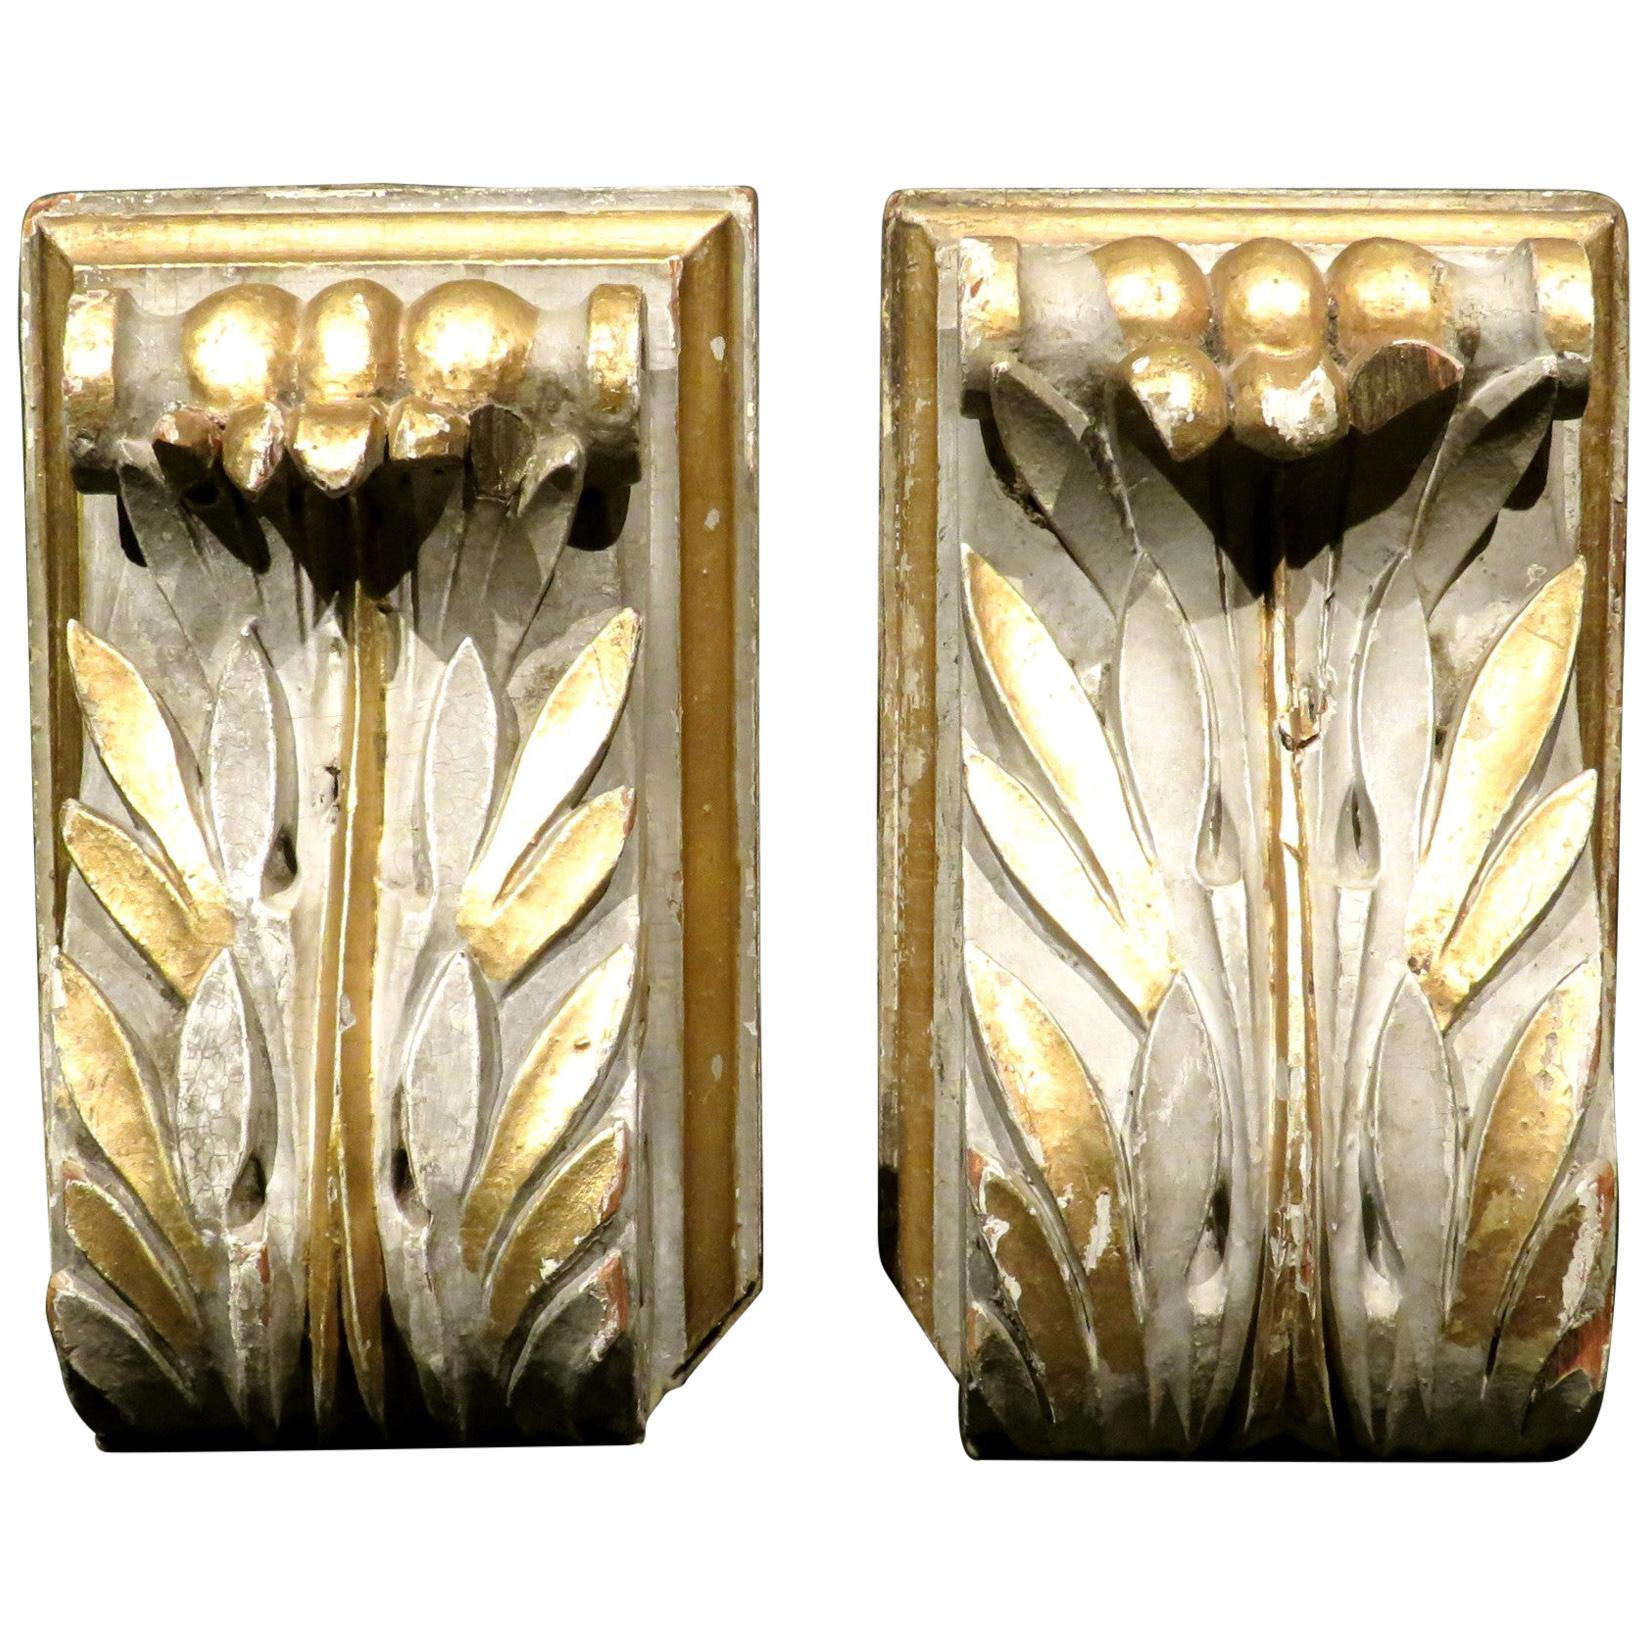 Pair of 19th Century Carved & Gilded Corbels Converted to Bookends, Circa 1890